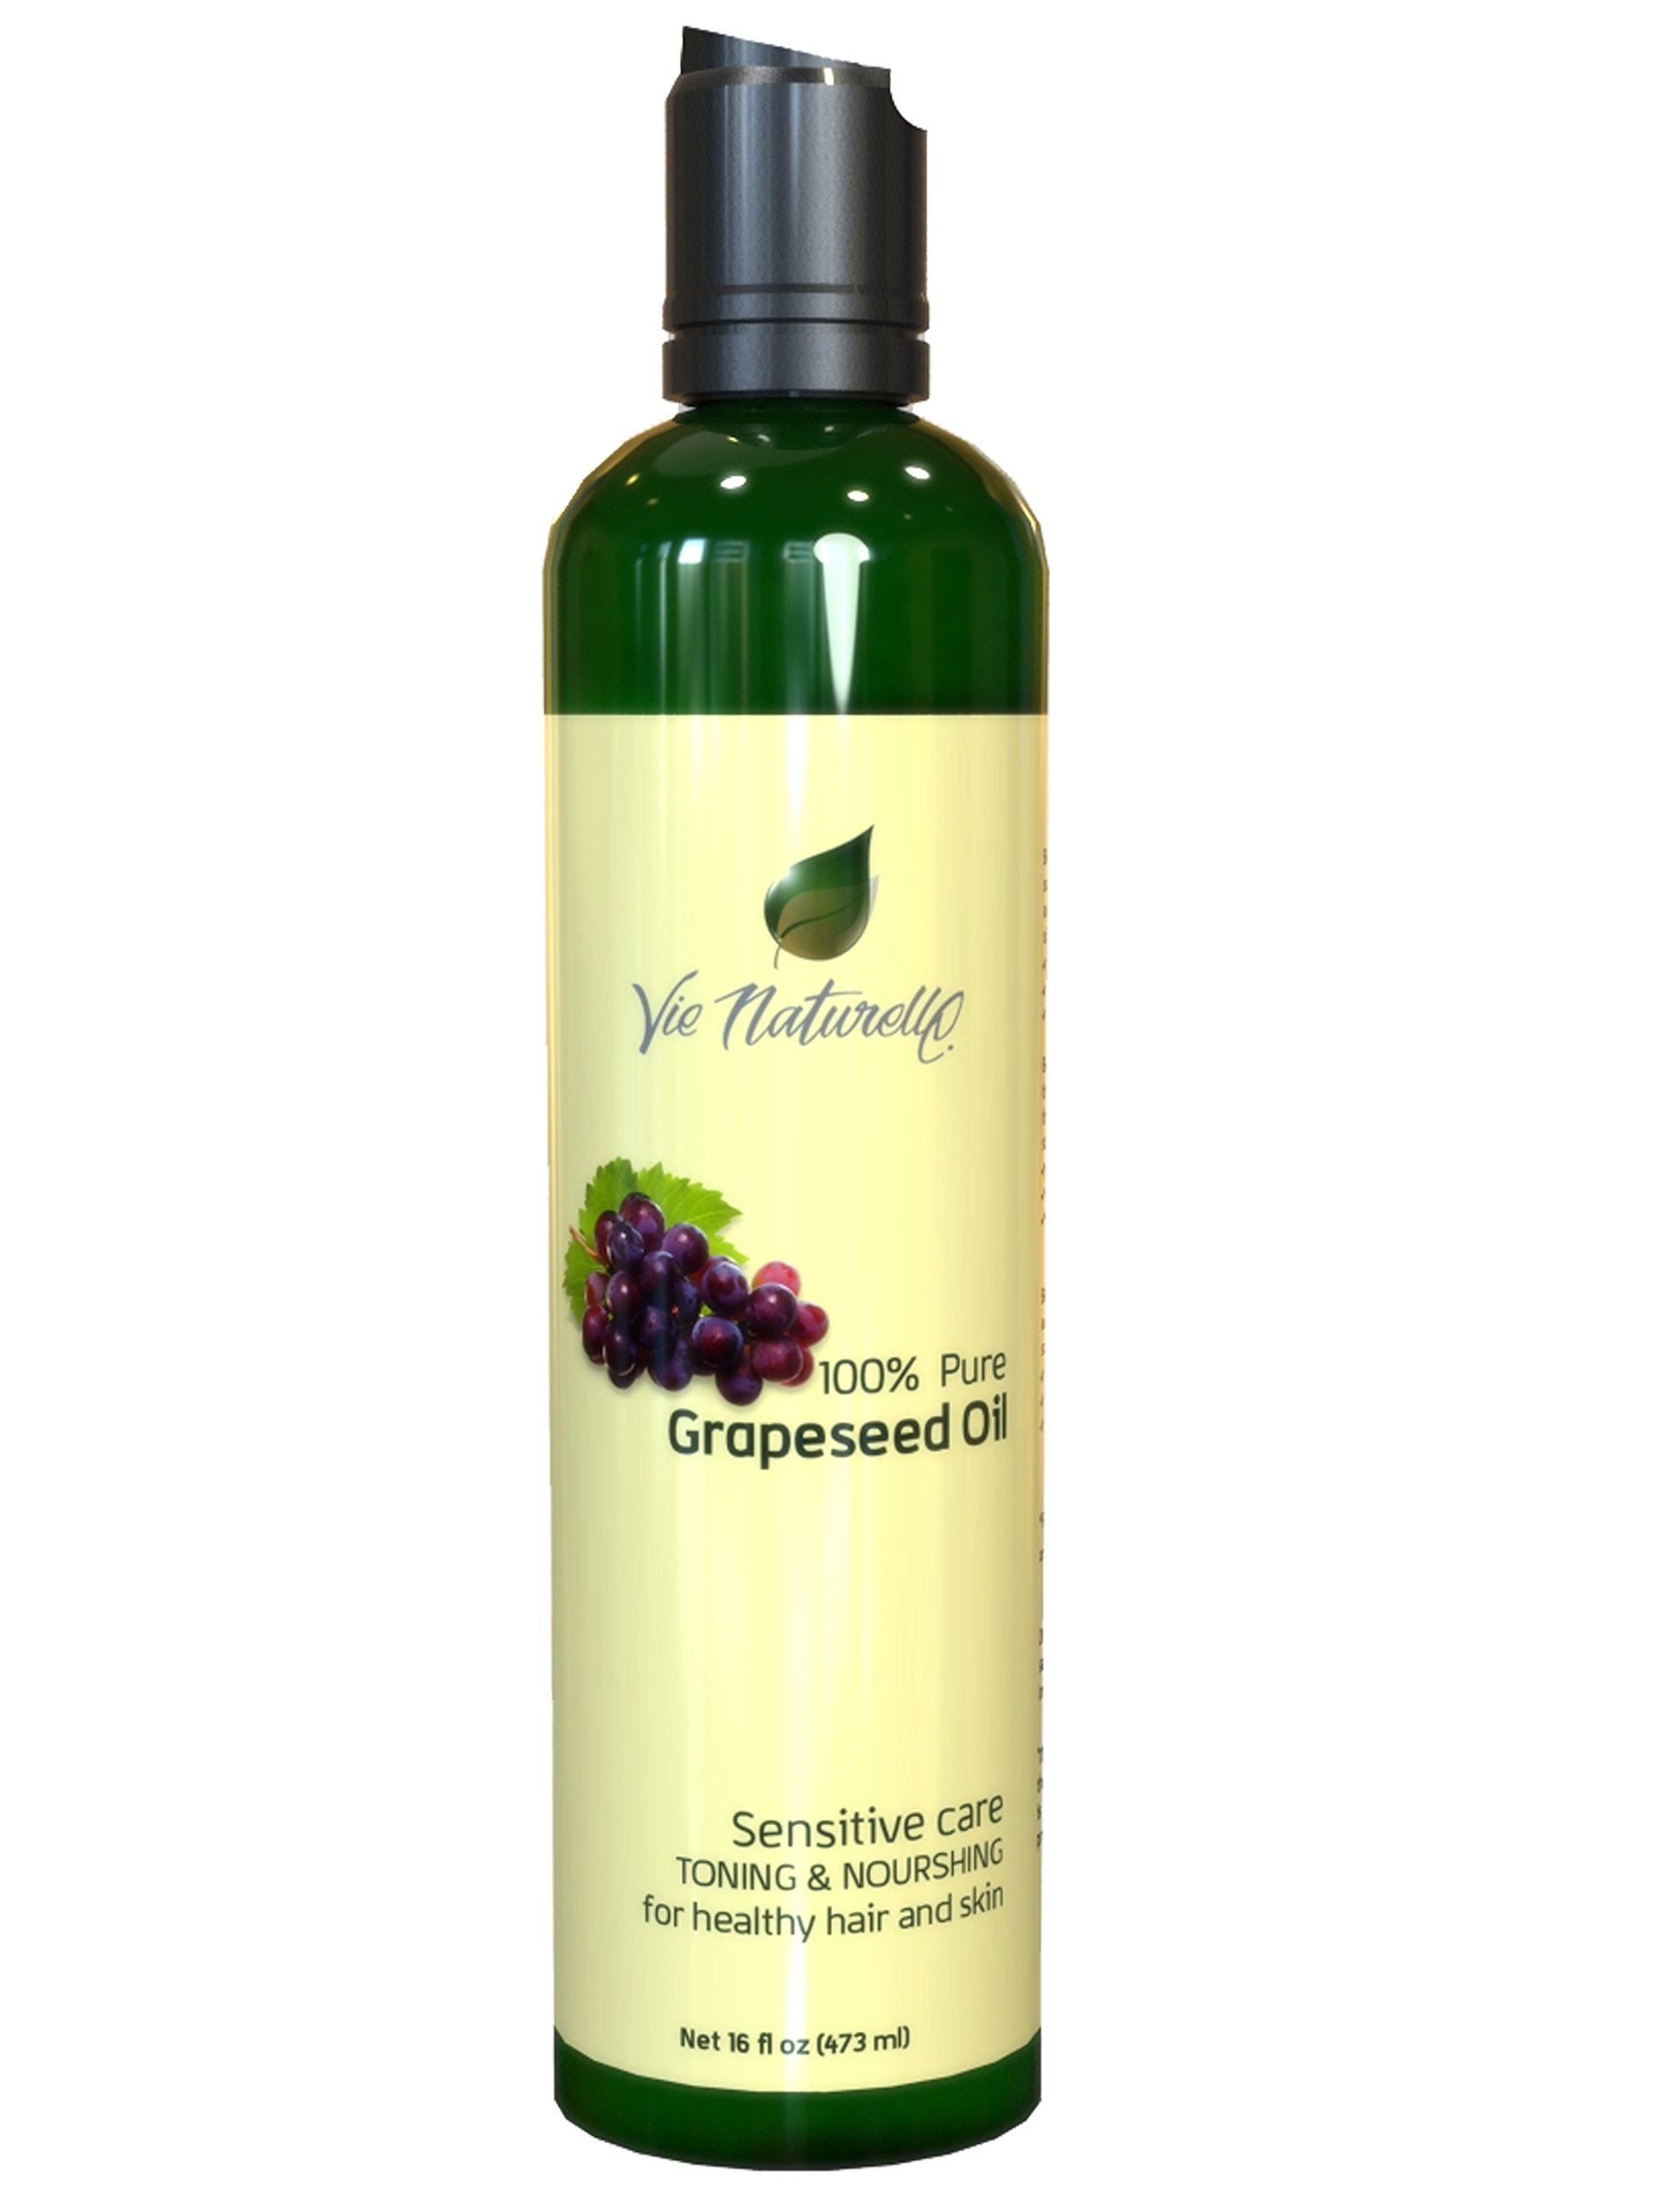 Vie Naturelle Grapeseed Oil for Hair, Cooking, & Skin - 100 % Pure Hexane Free - No Fillers, Dyes or Artificial Ingredients of Any Kind, 16 fl. oz.